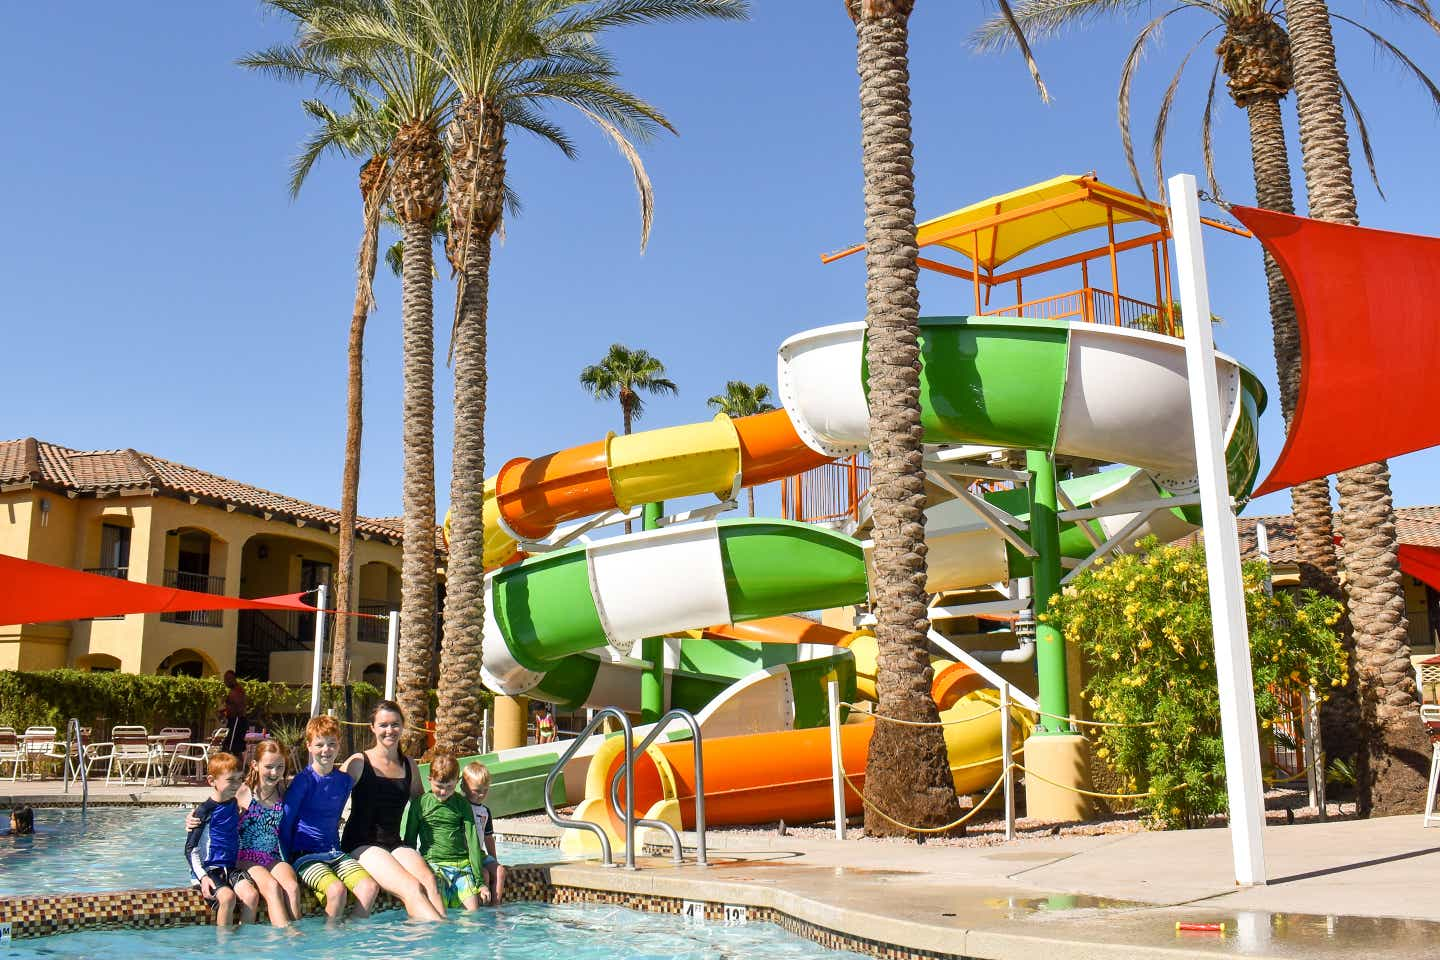 Author, Jessica Averett, and her family sit poolside at our Scottsdale Resort in Arizona.